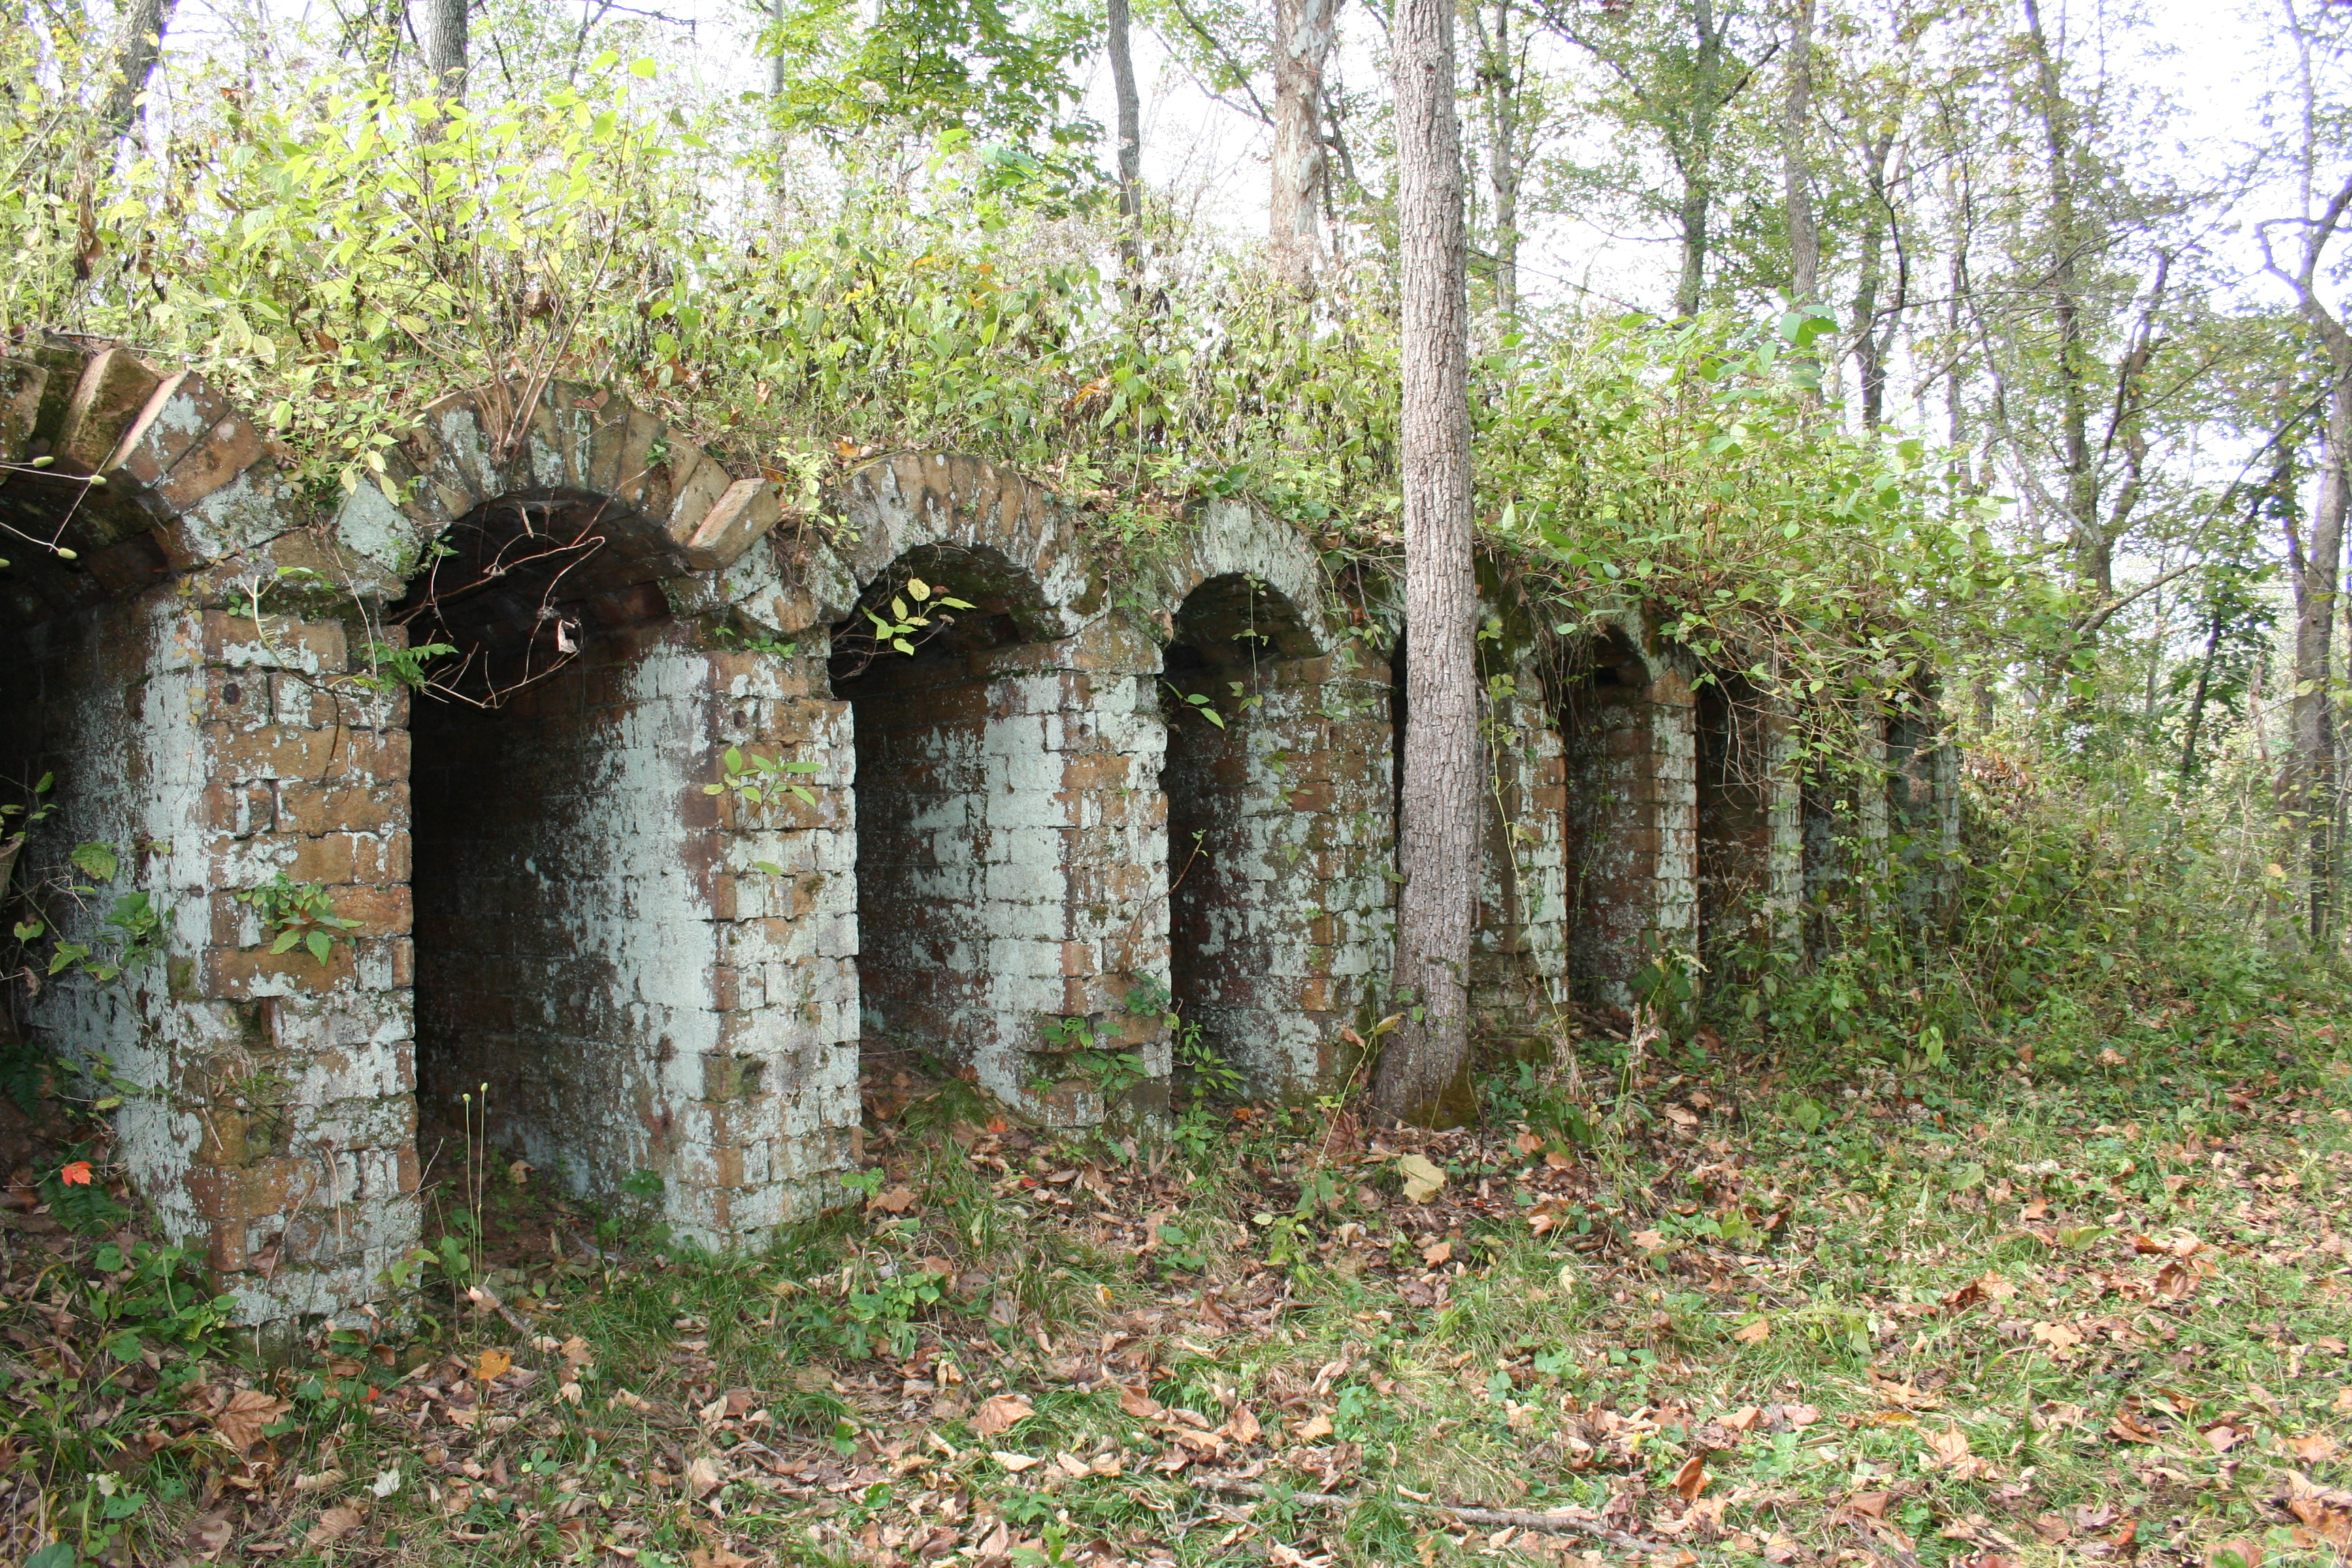 Belgium coke ovens constructed by Rader within the forest